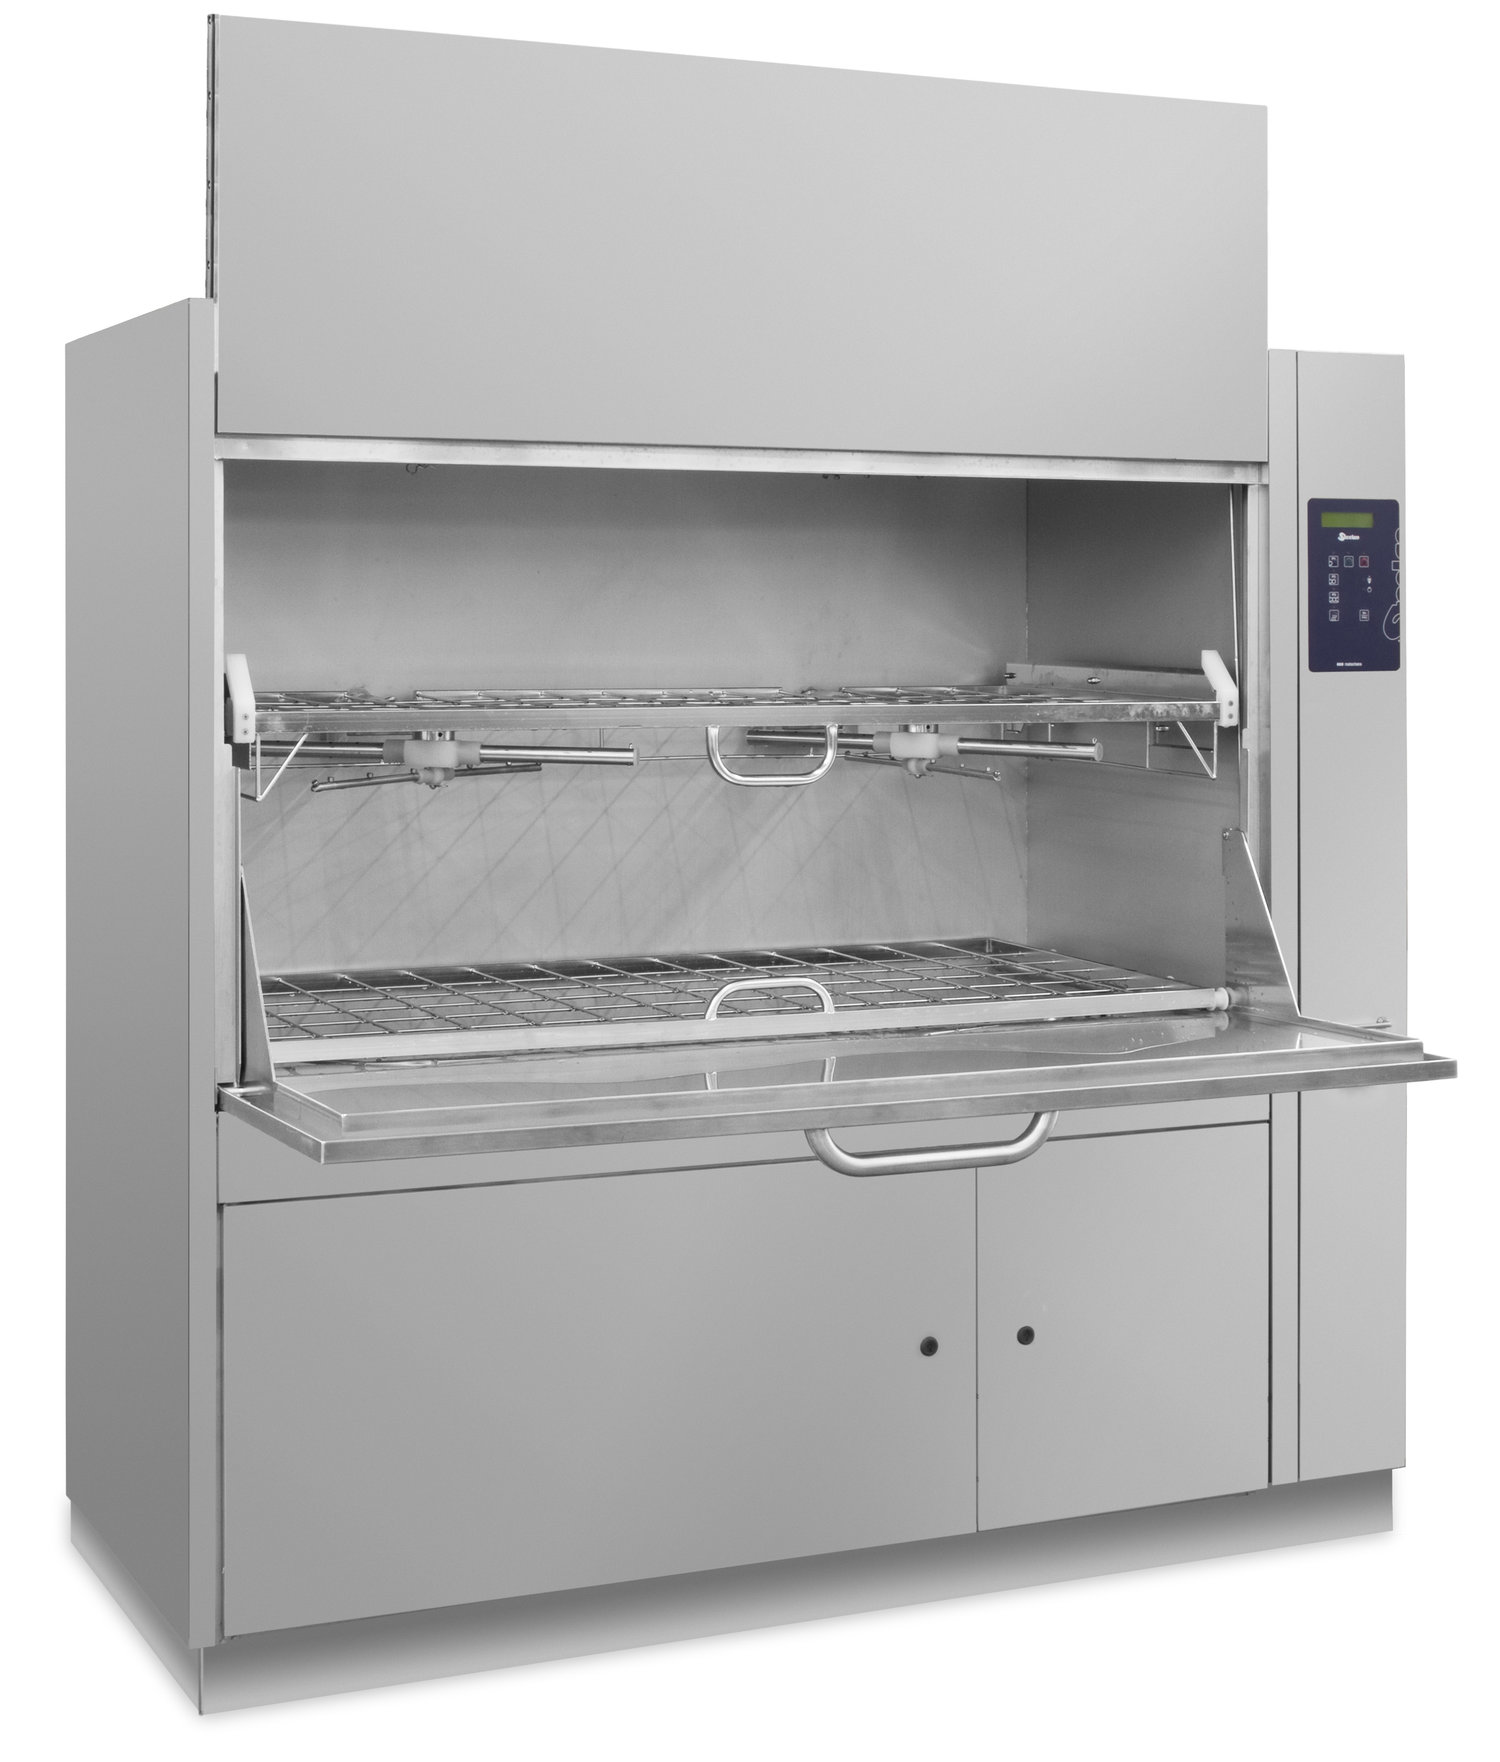 AC1400 - Small Washer